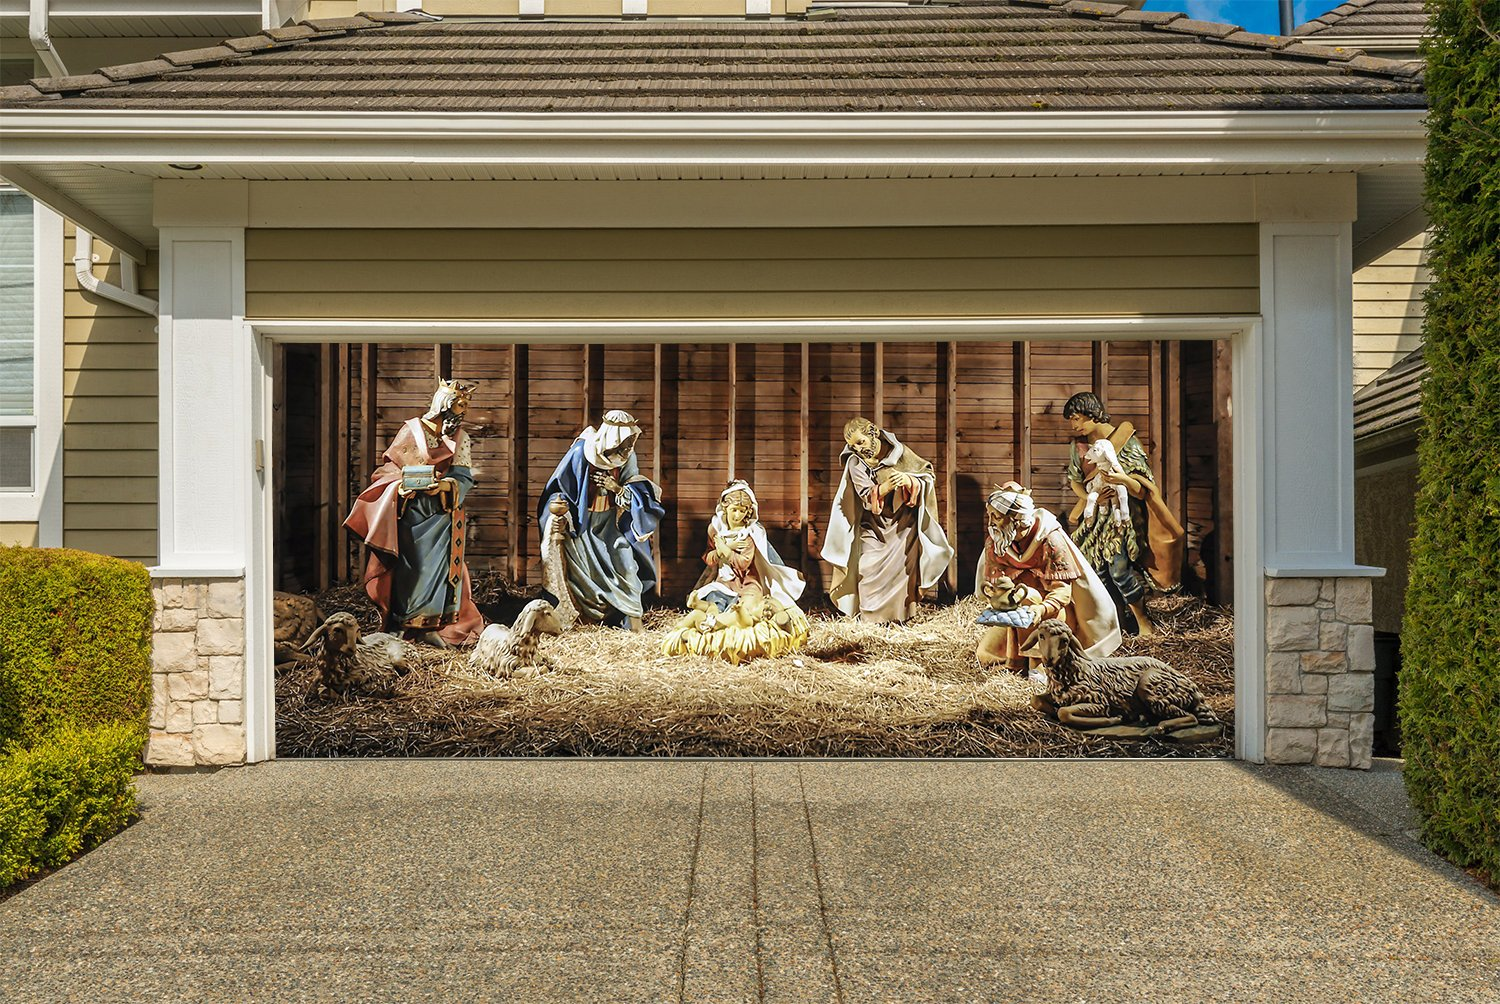 Nativity Scene Banners for 2 Car Garage Door Covers Outdoor 3D Effect Christmas Full Color House Billboard Garage Door Holiday Christmas Jesus Holy Night Decor Murals size 82x188 inches DAV217 by WallTattooHome